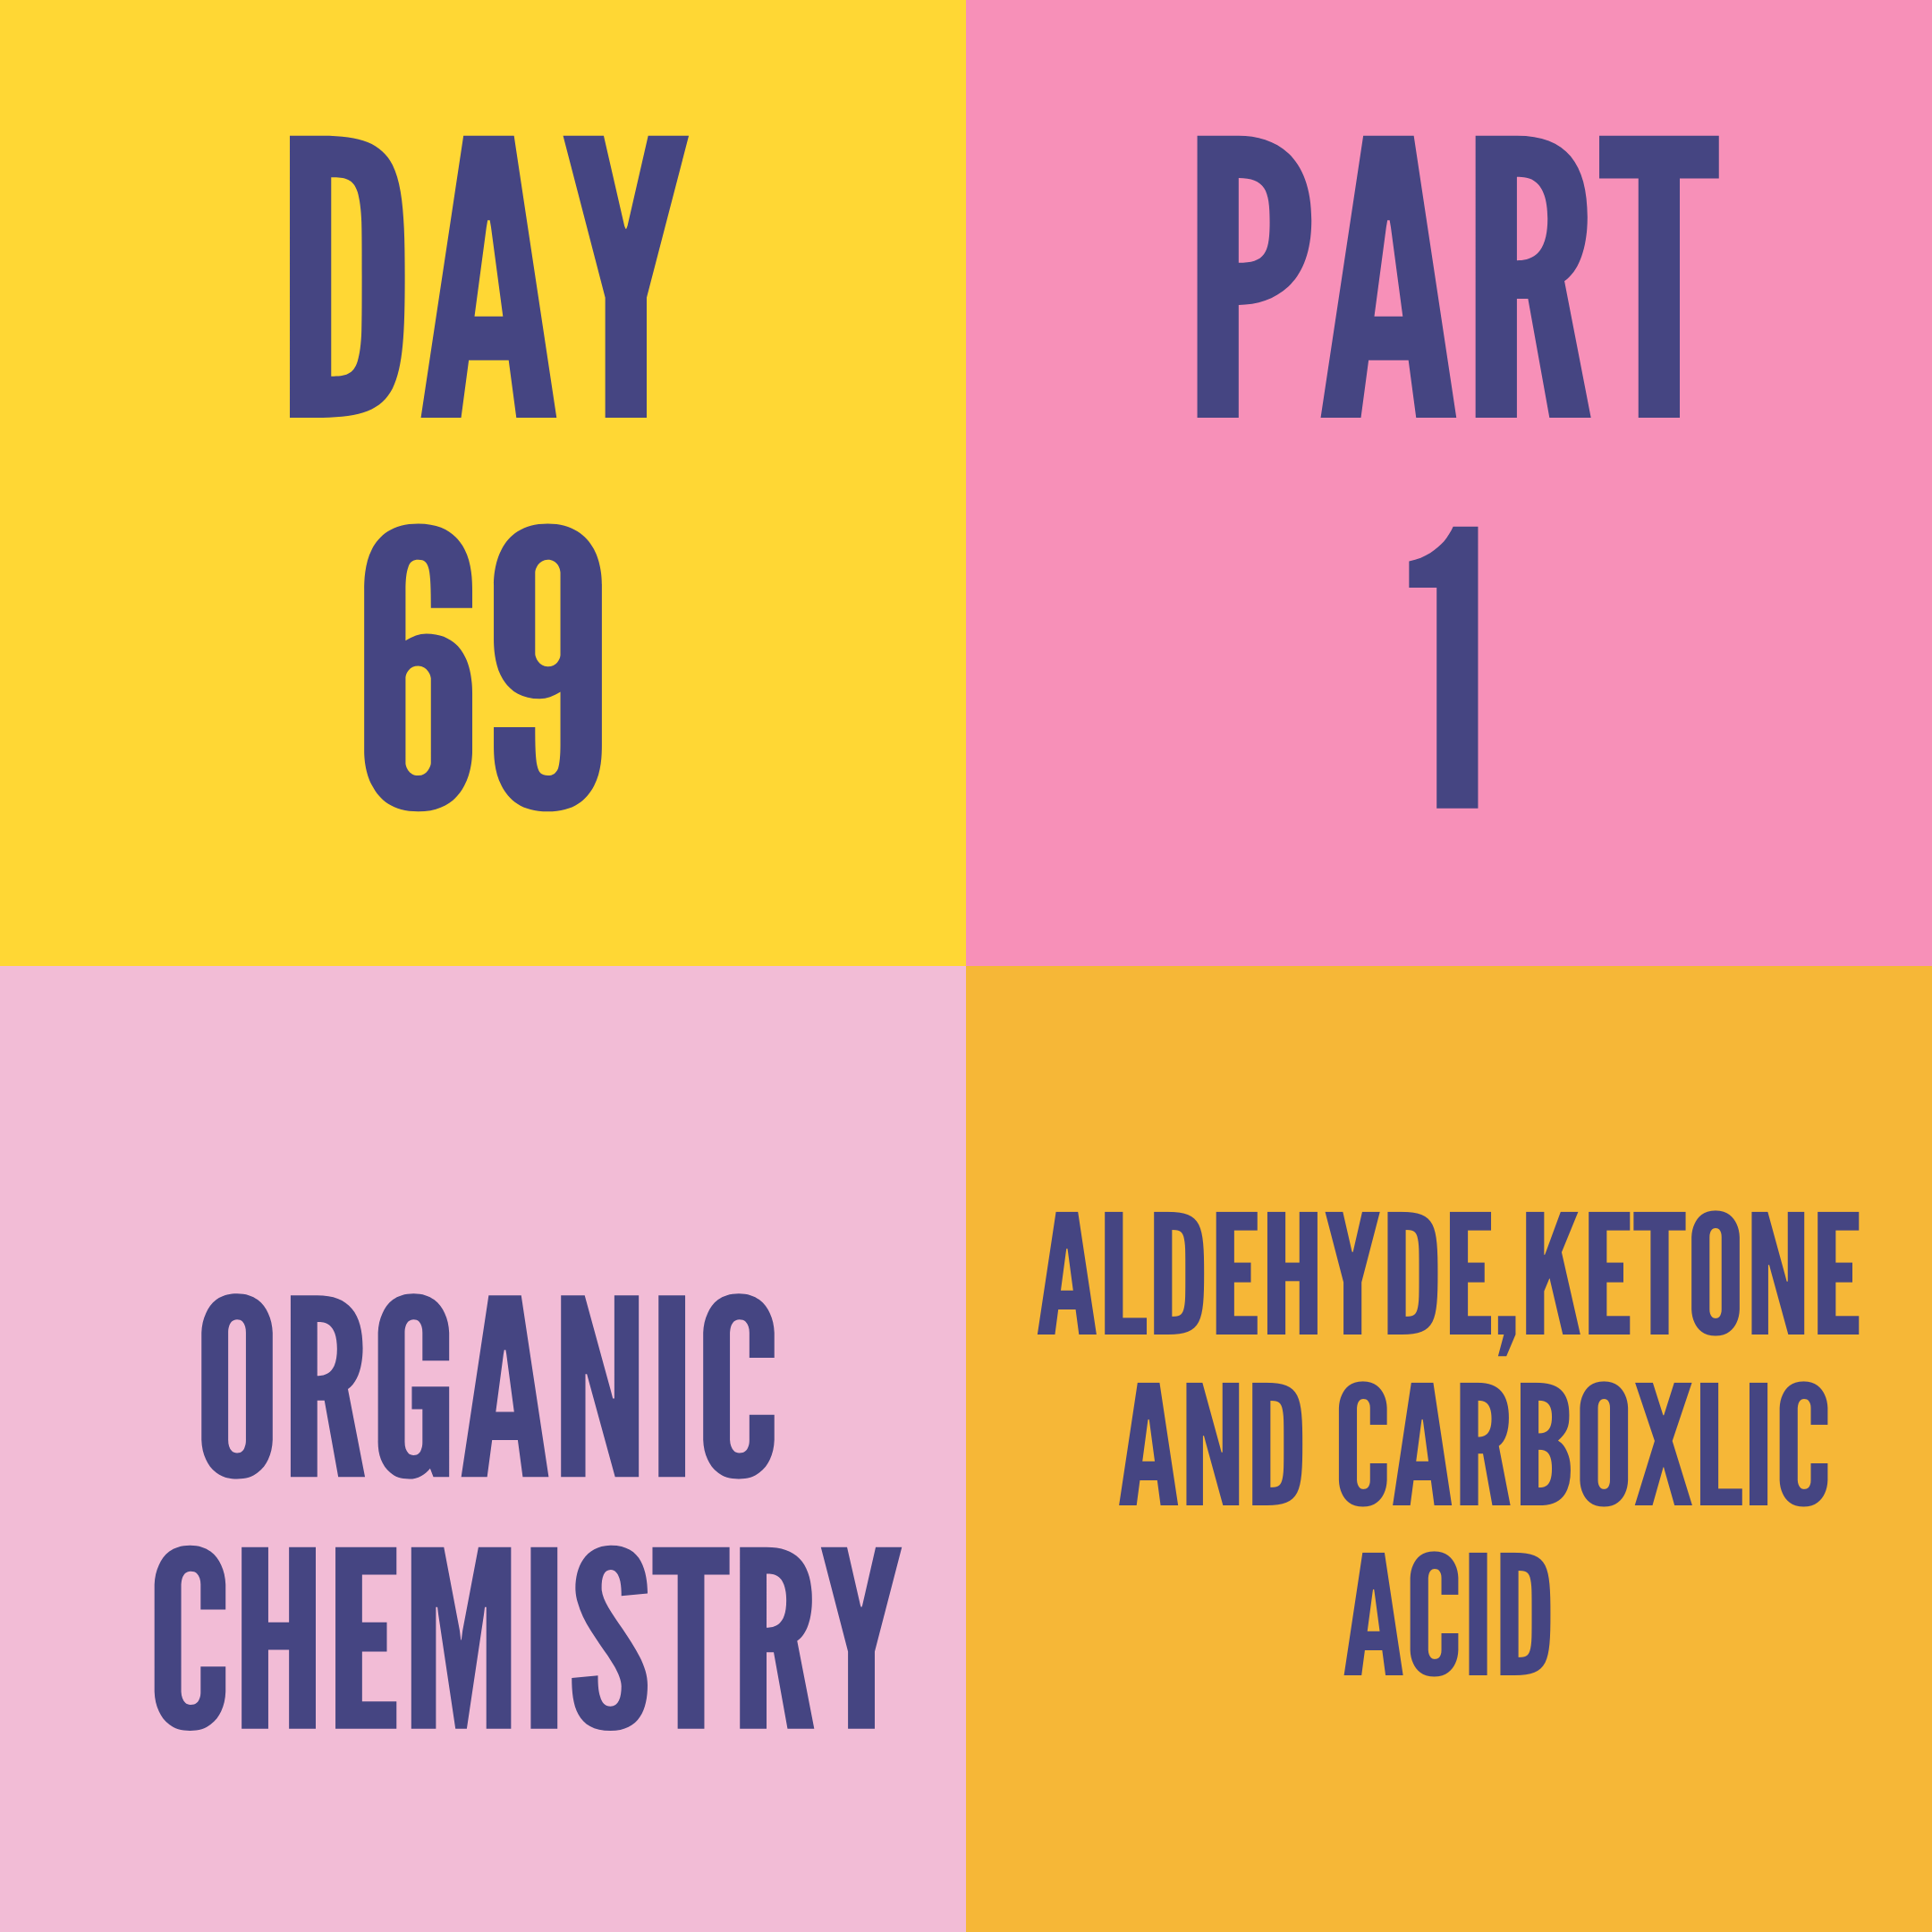 DAY-69 PART-1 ALDEHYDE,KETONE AND CARBOXLIC ACID